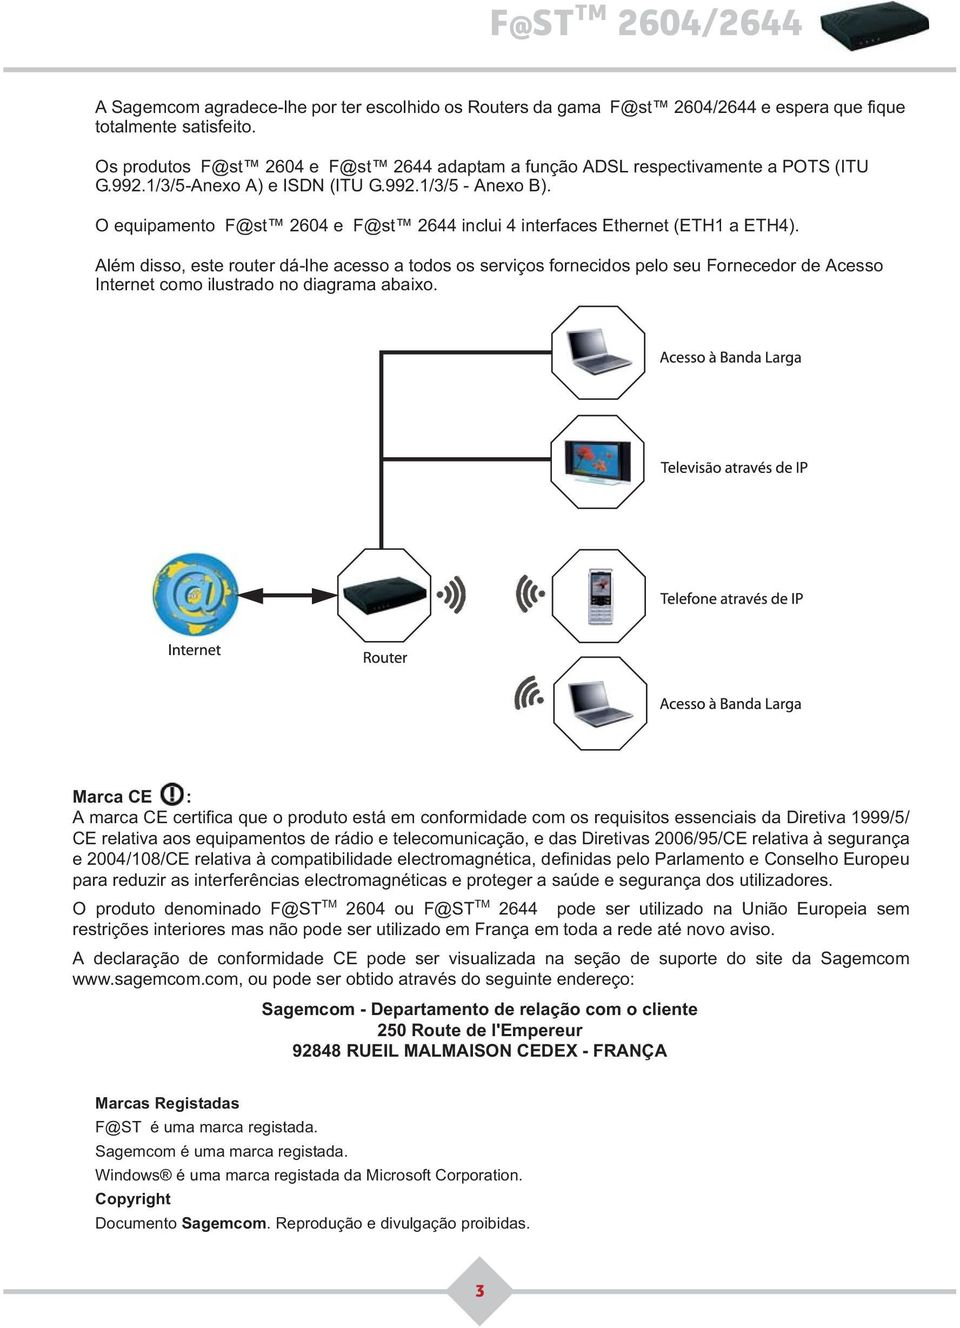 O equipamento F@st 2604 e F@st 2644 inclui 4 interfaces Ethernet (ETH1 a ETH4).